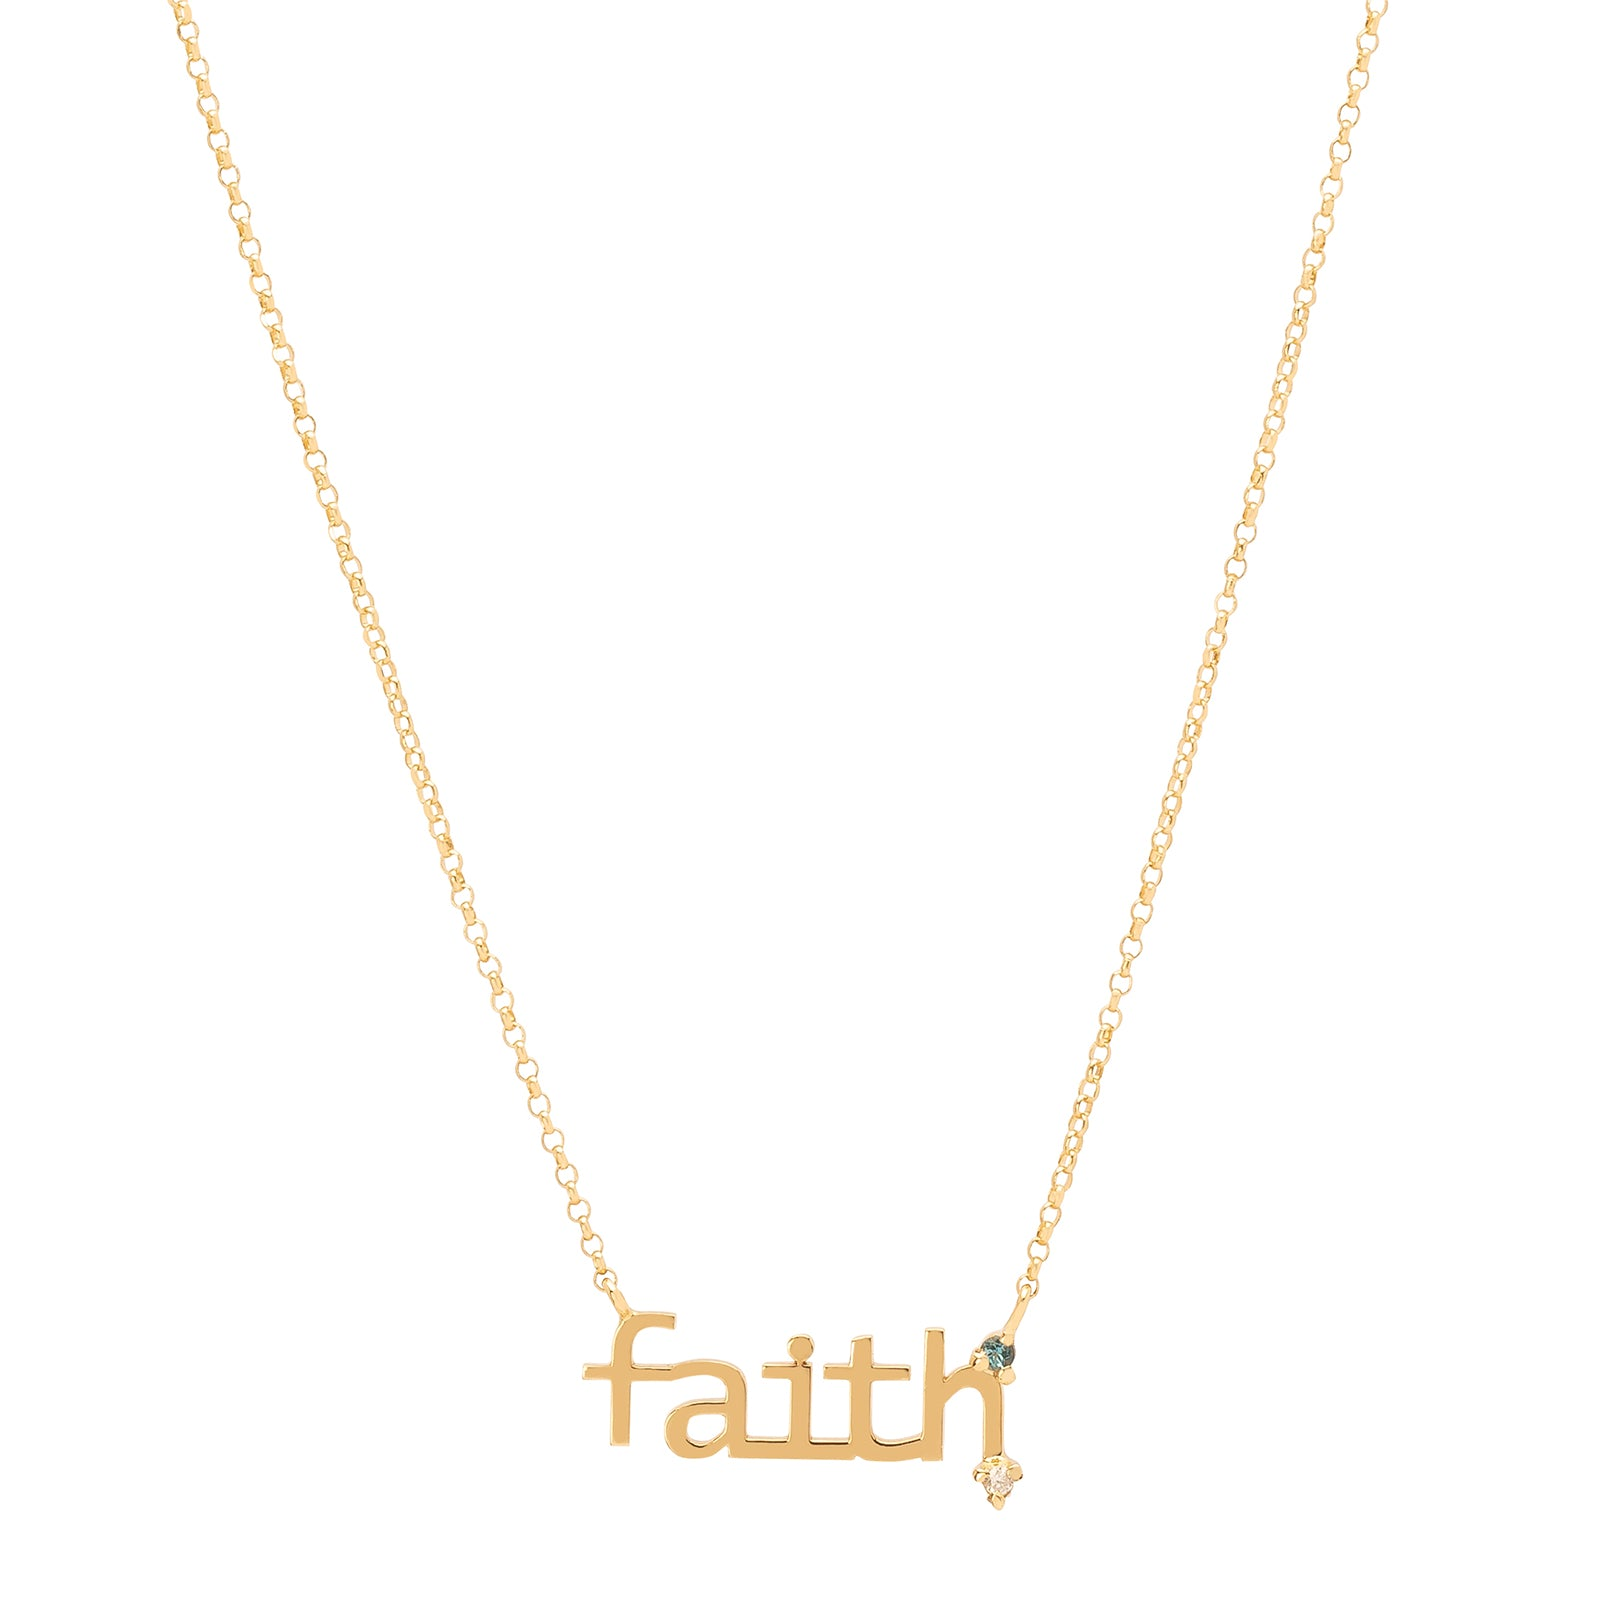 Carolina Neves Faith Necklace - Necklaces - Broken English Jewelry